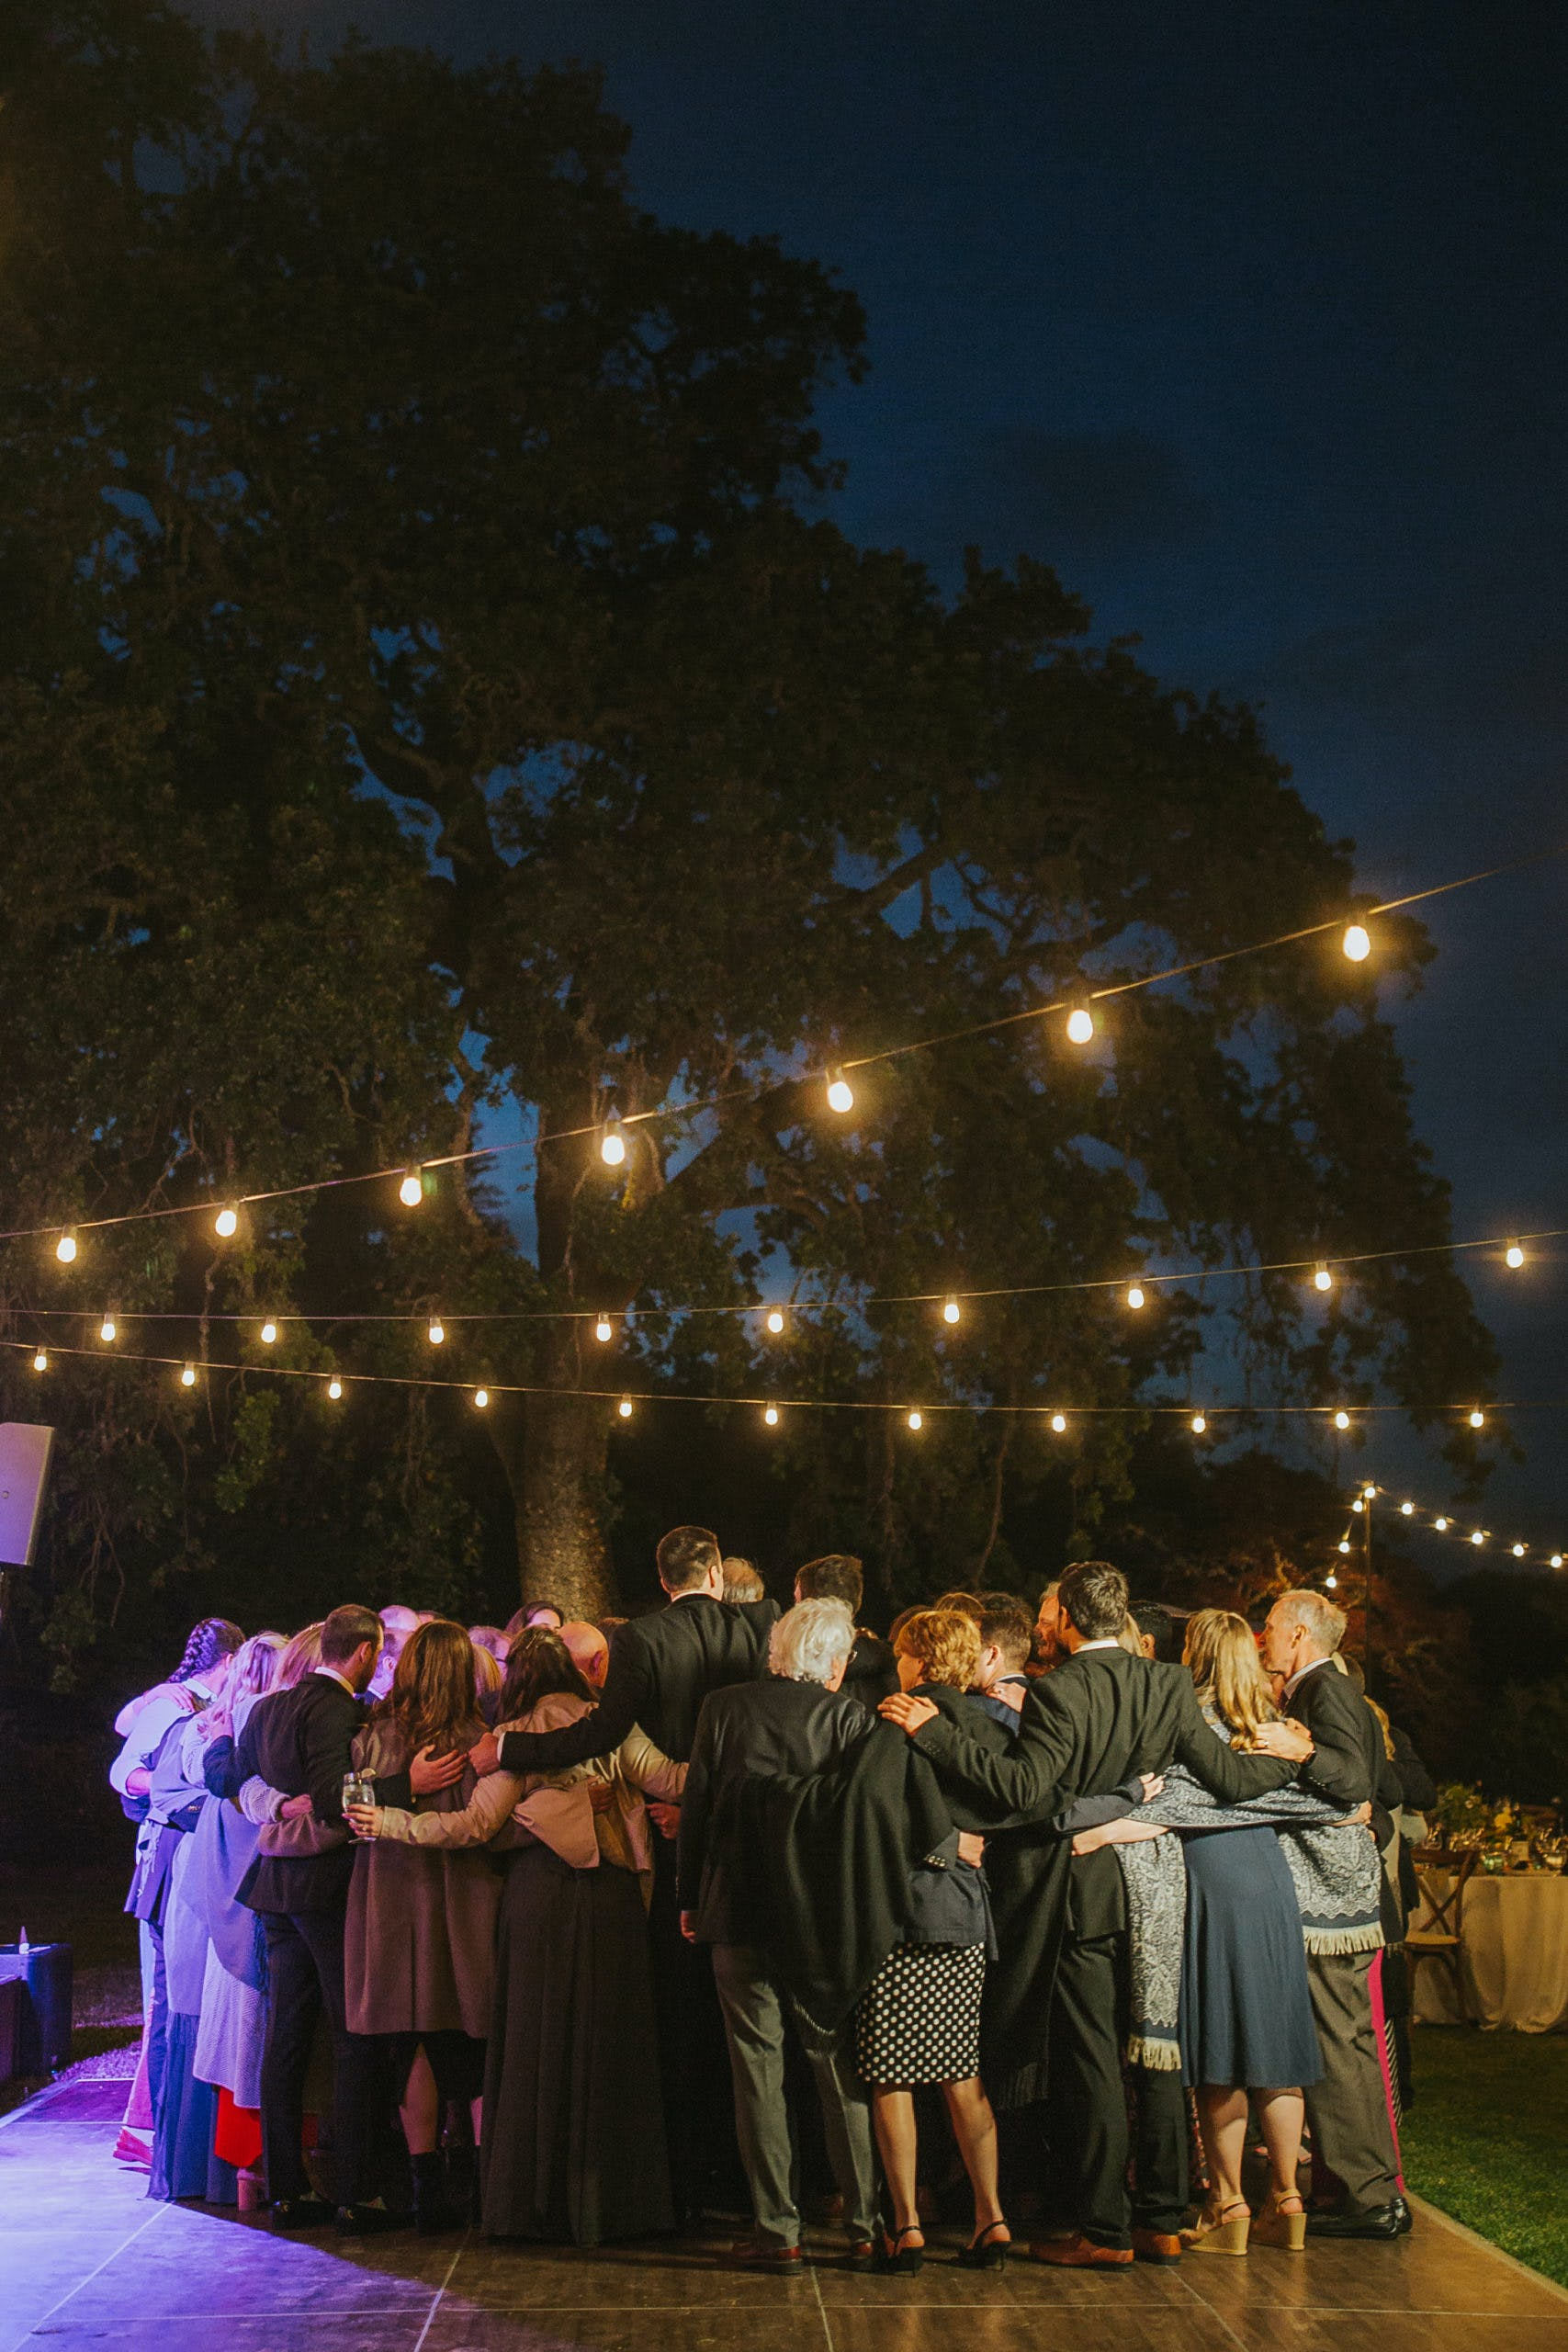 Group hug on dance floor at night with string lights décor   PartySlate